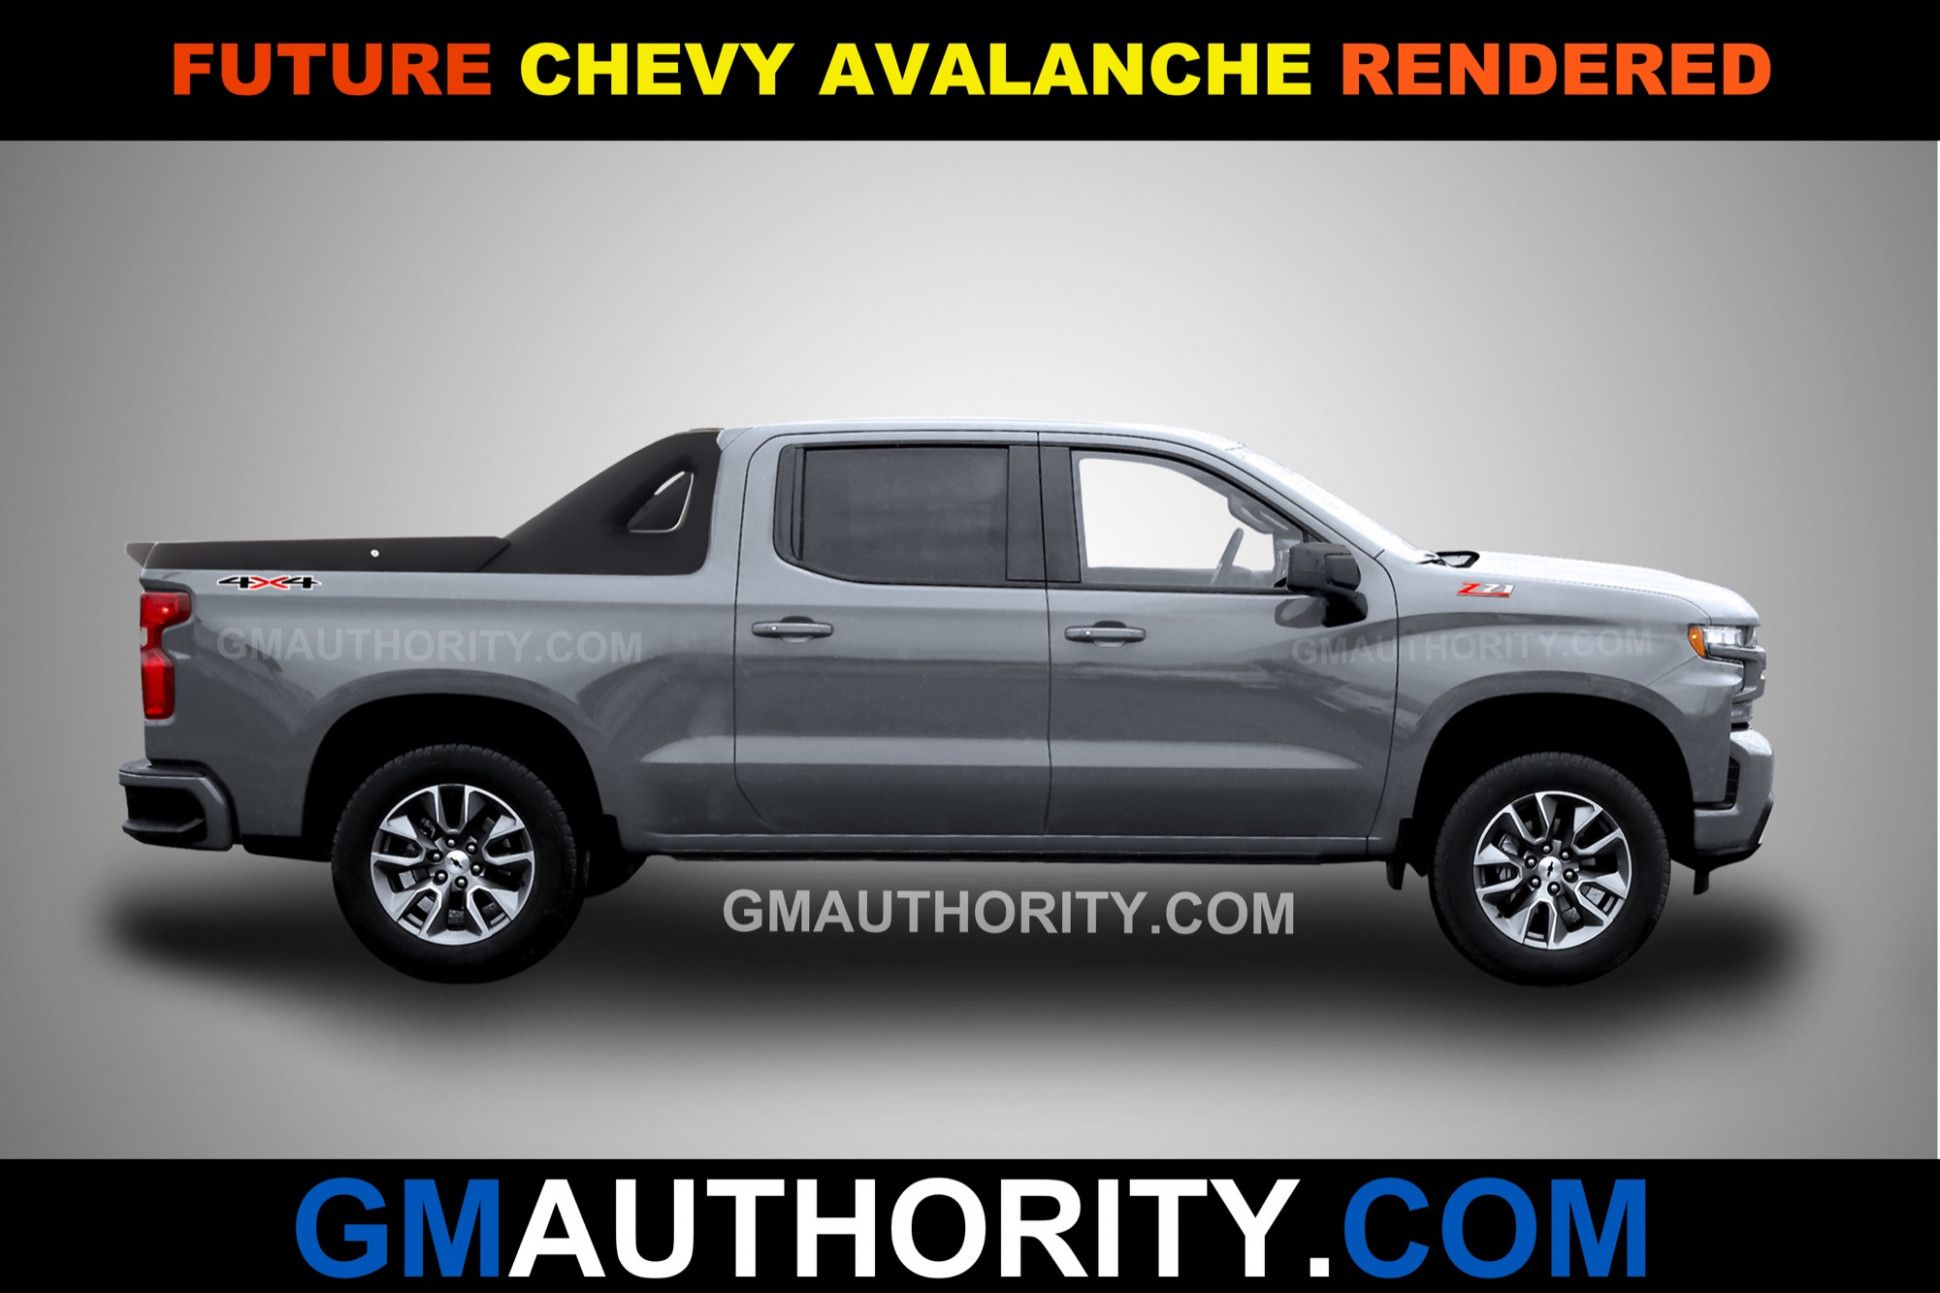 2020 Chevrolet Avalanche In 2020 Chevy Avalanche Chevy Chevy